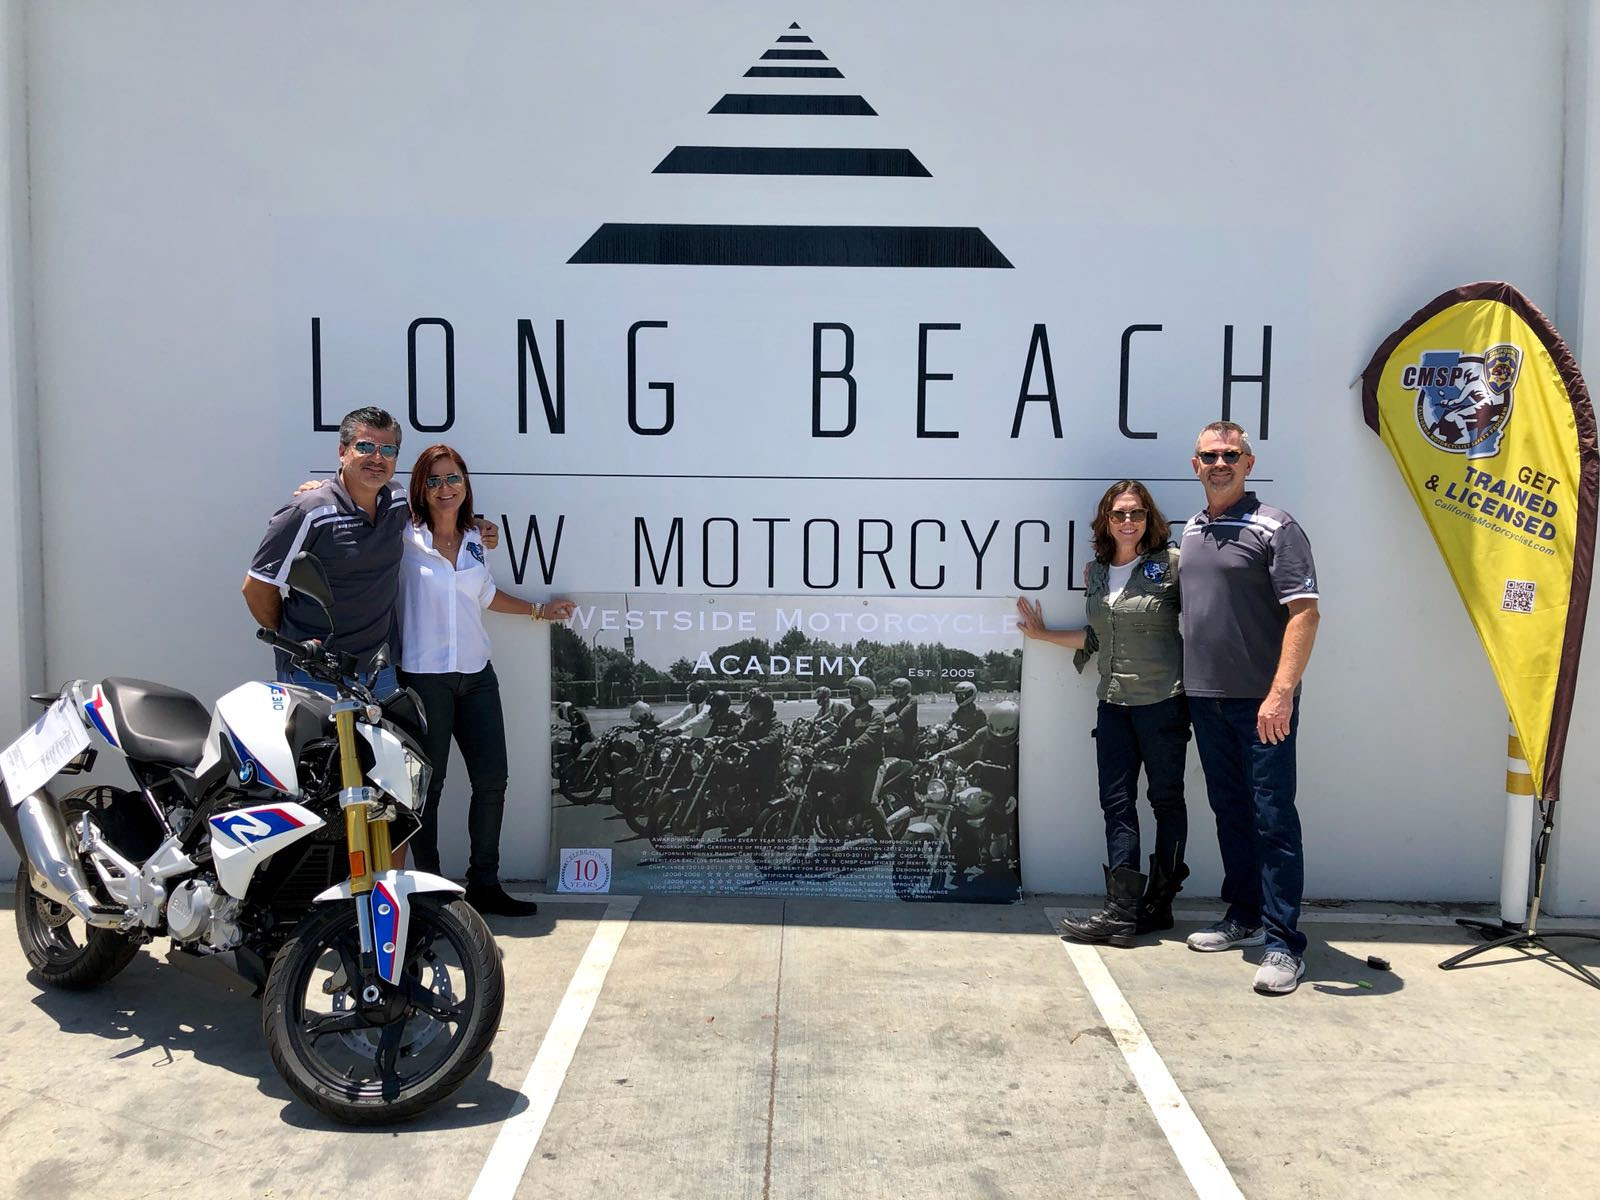 Long Beach BMW Motorcycles co-owners Charles Berthon and David Lindahl with Westside Motorcycle Academy co-owners Erika Willhite and Amanda Cunningham.